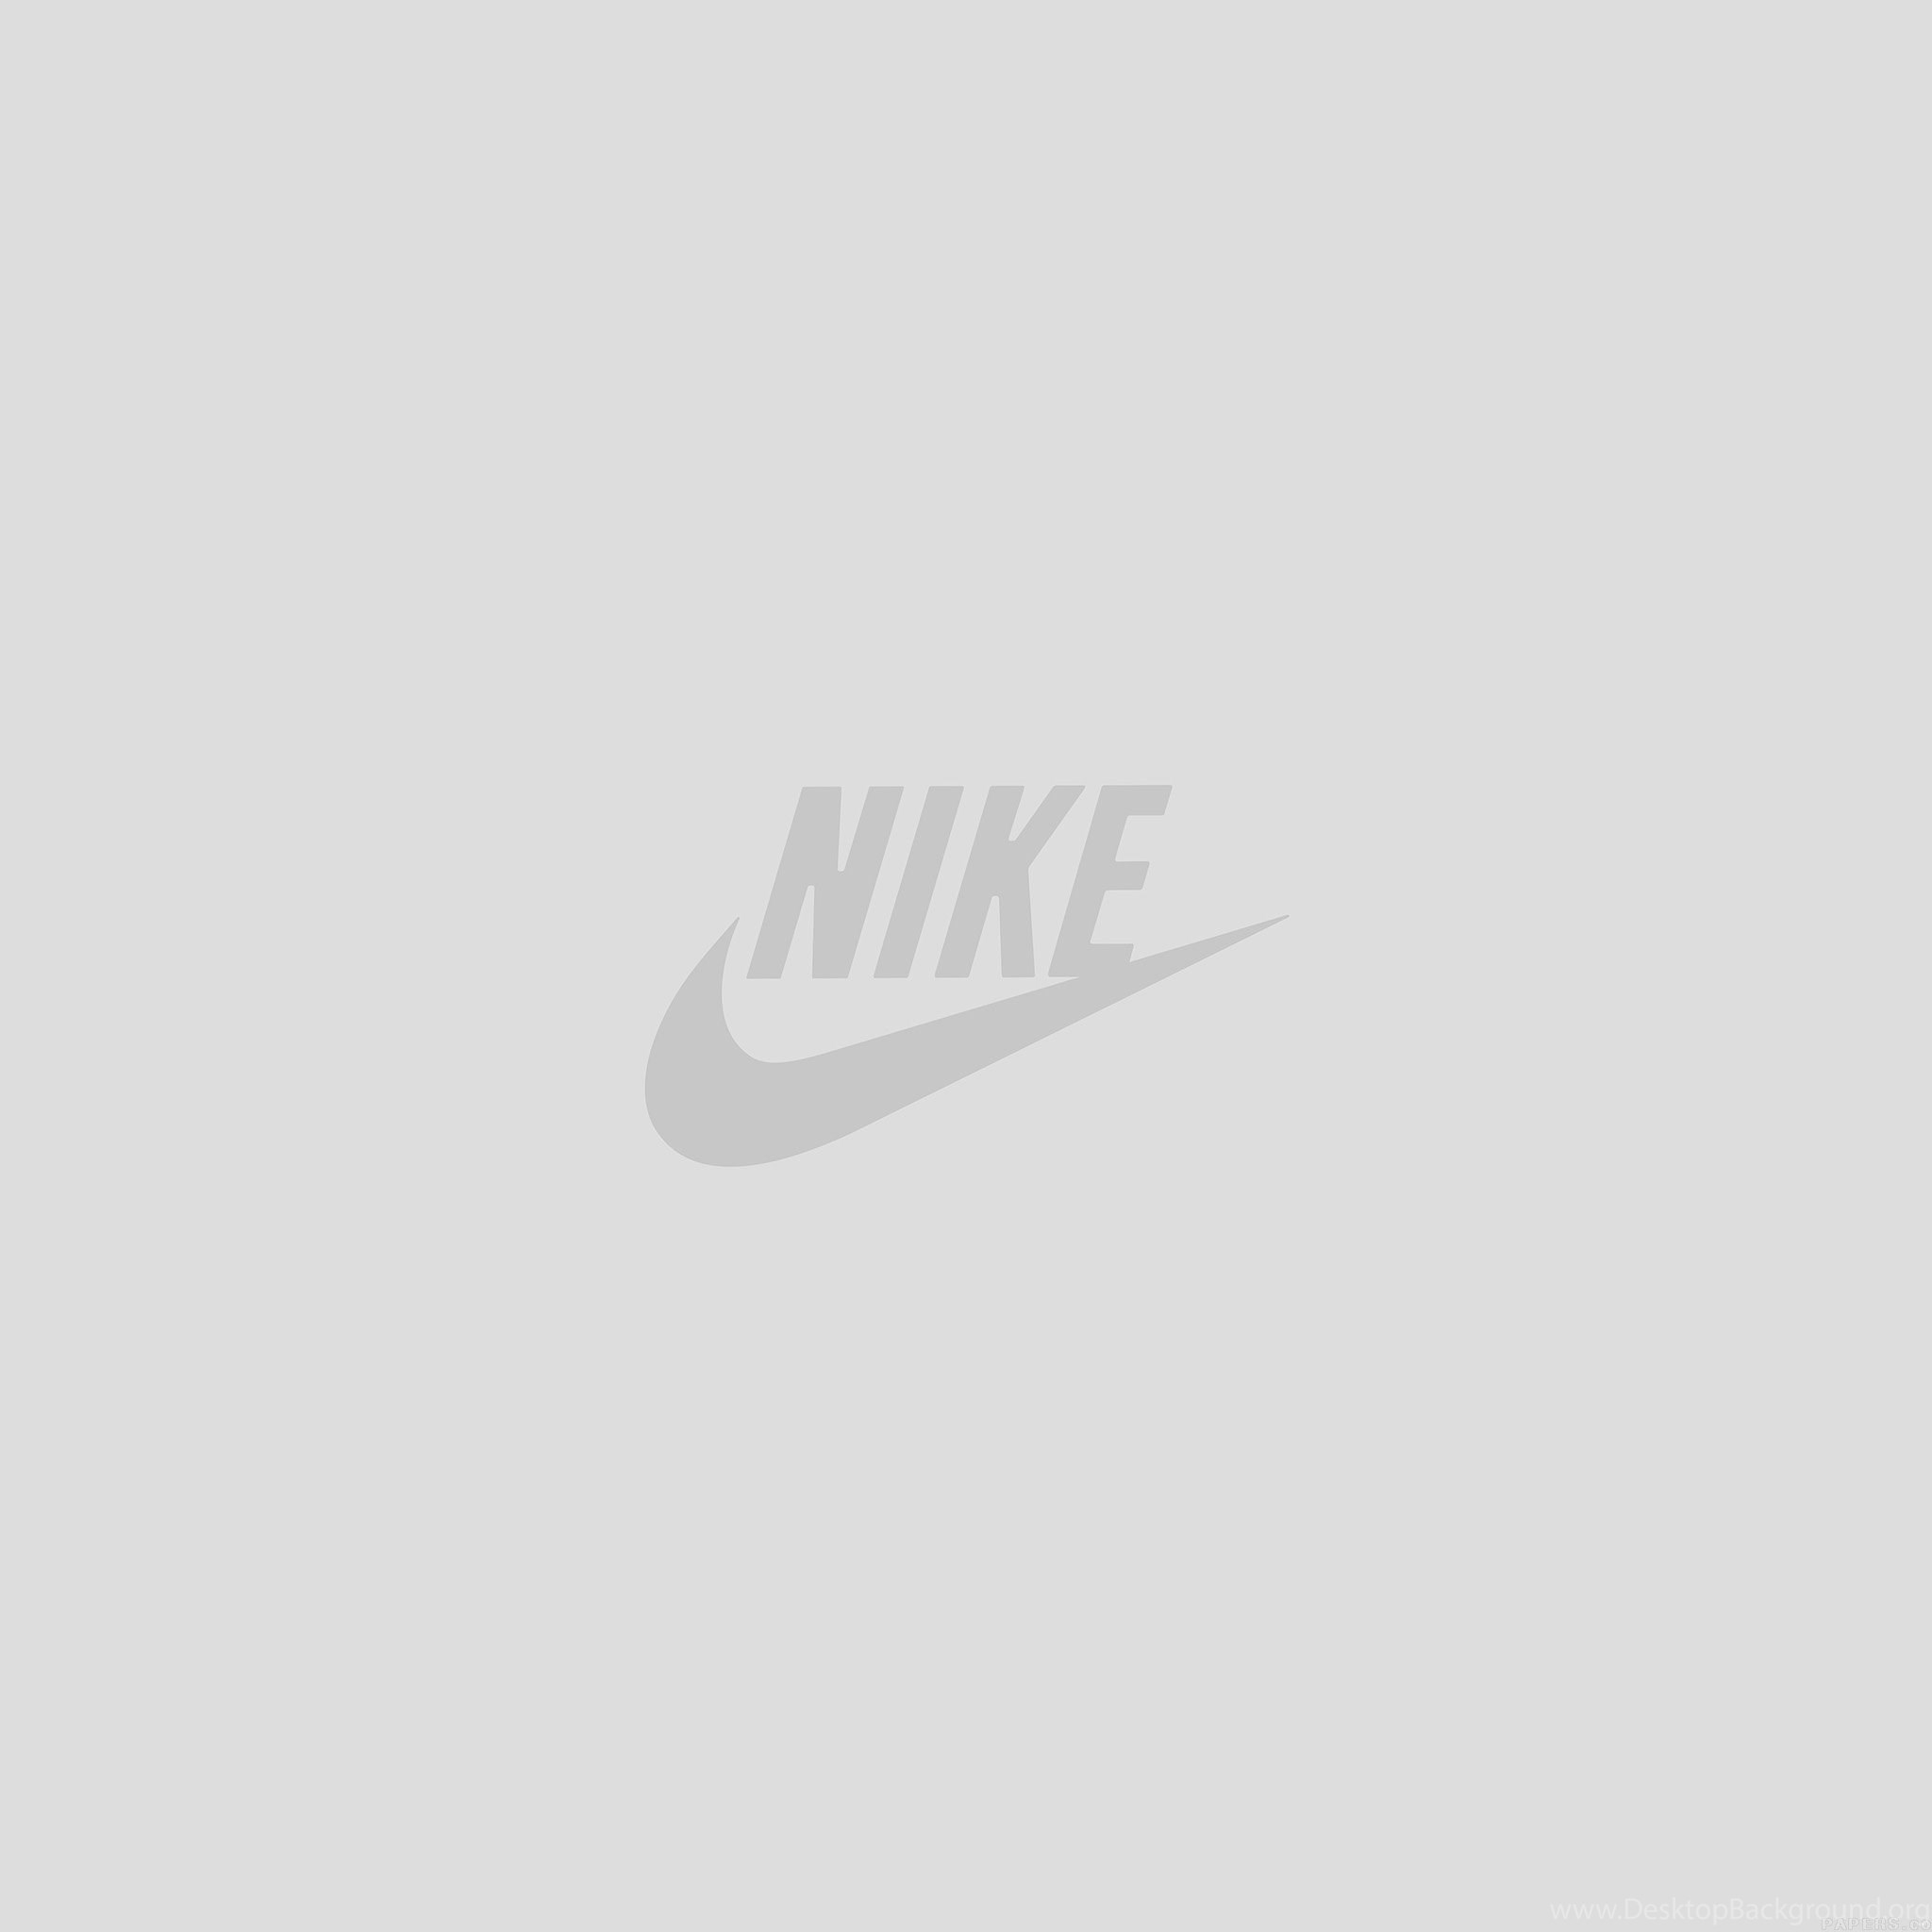 Nike Logo Sports Art Minimal Simple White iPad Air Wallpapers .